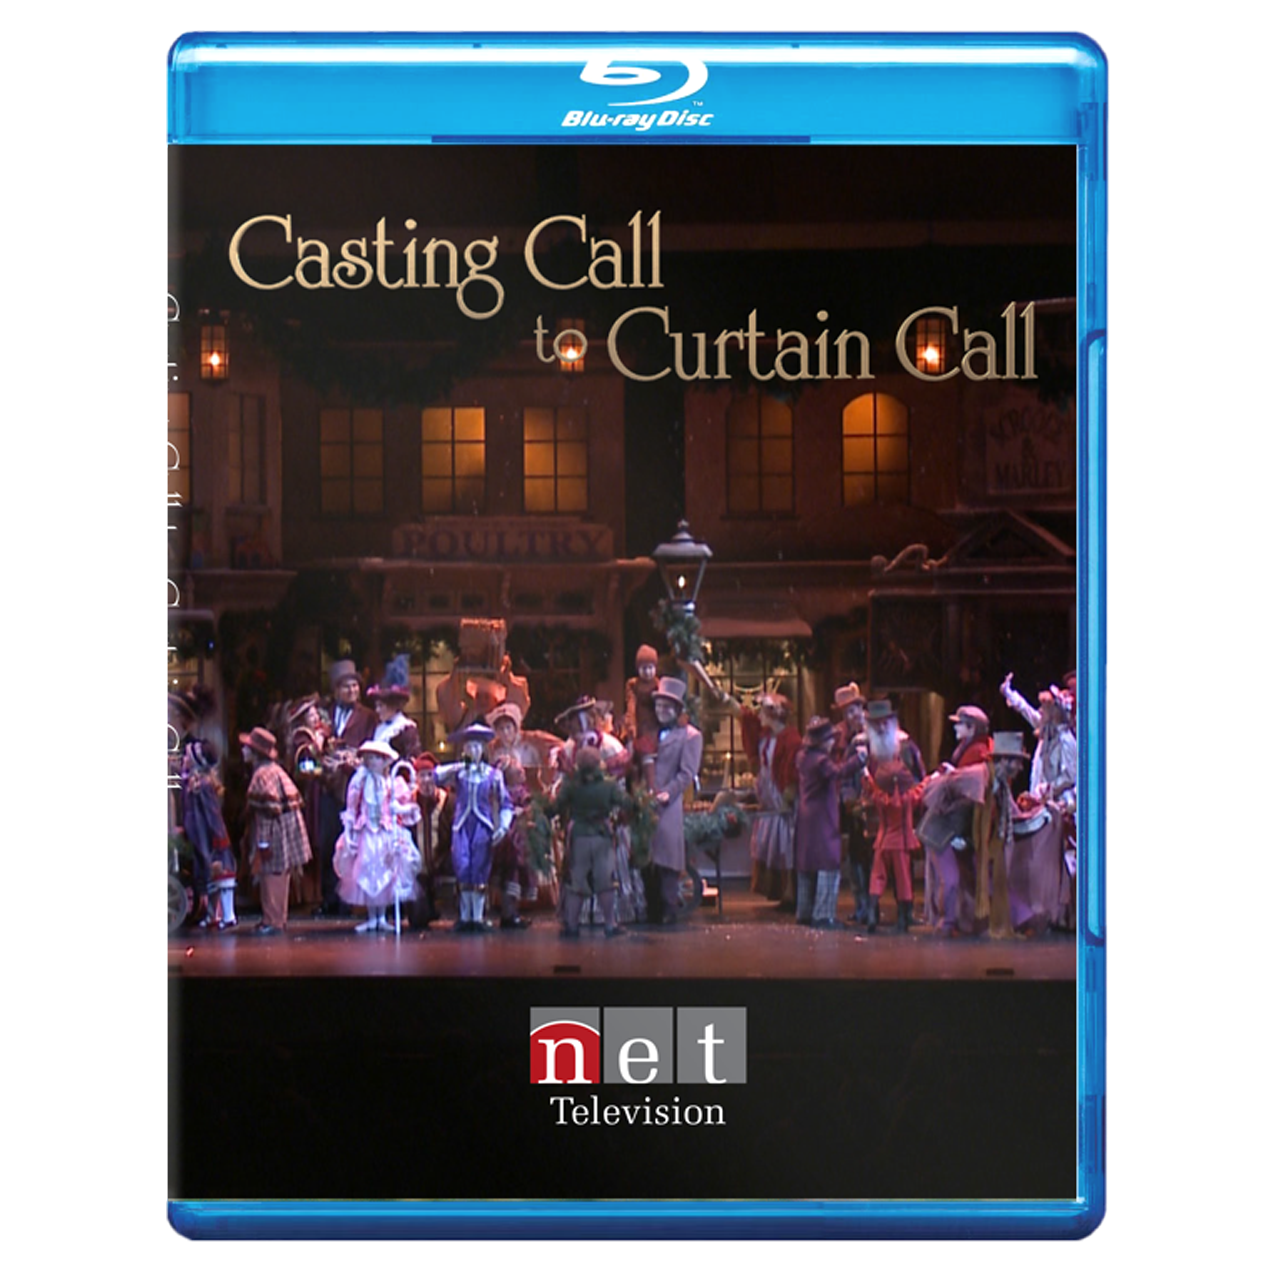 Casting Call to Curtain Call Blu-Ray Disc